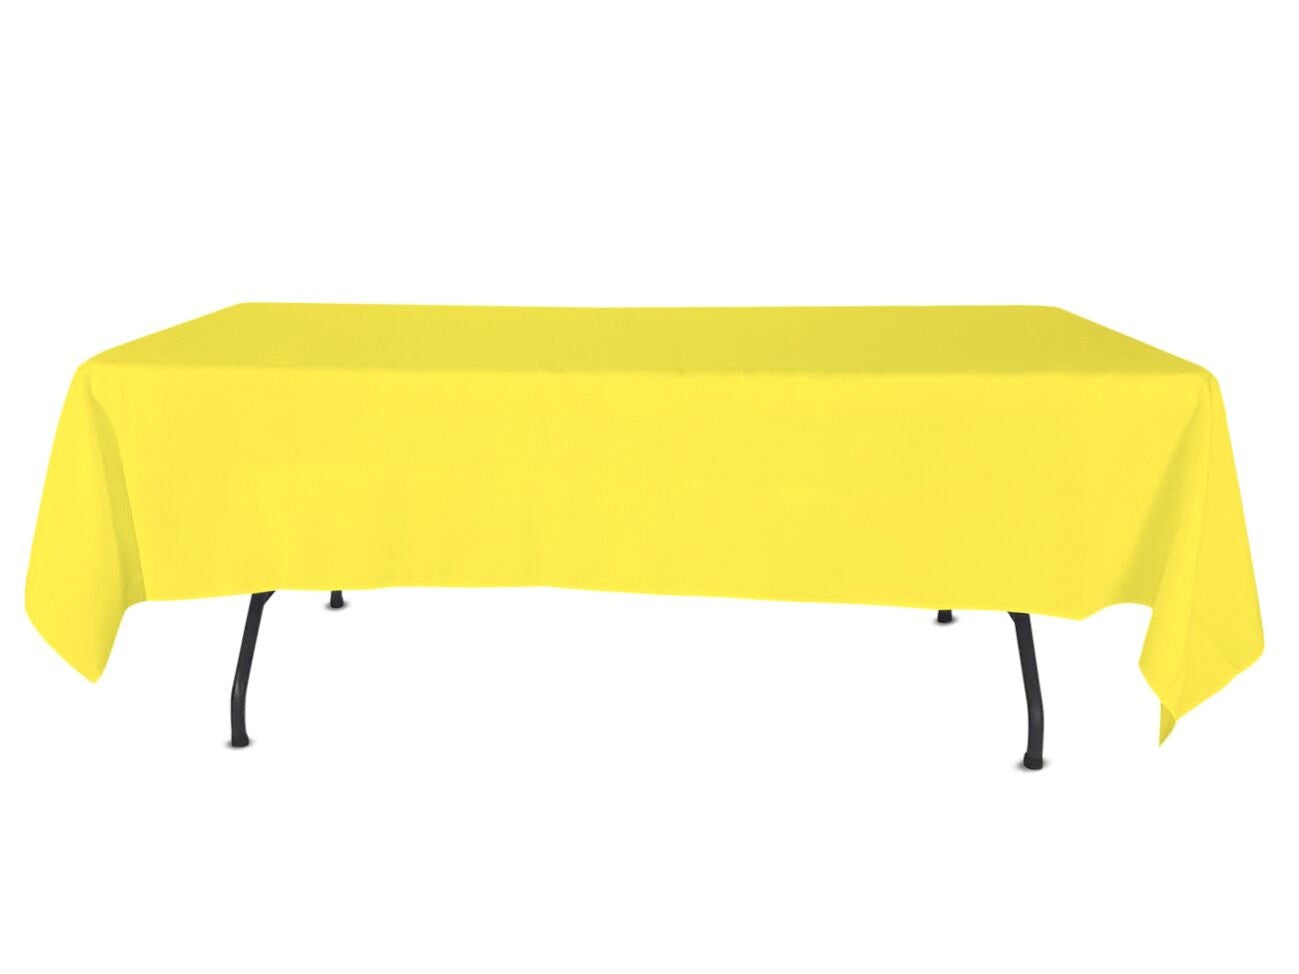 60u0027u0027 X 102u0027u0027 Tablecloth